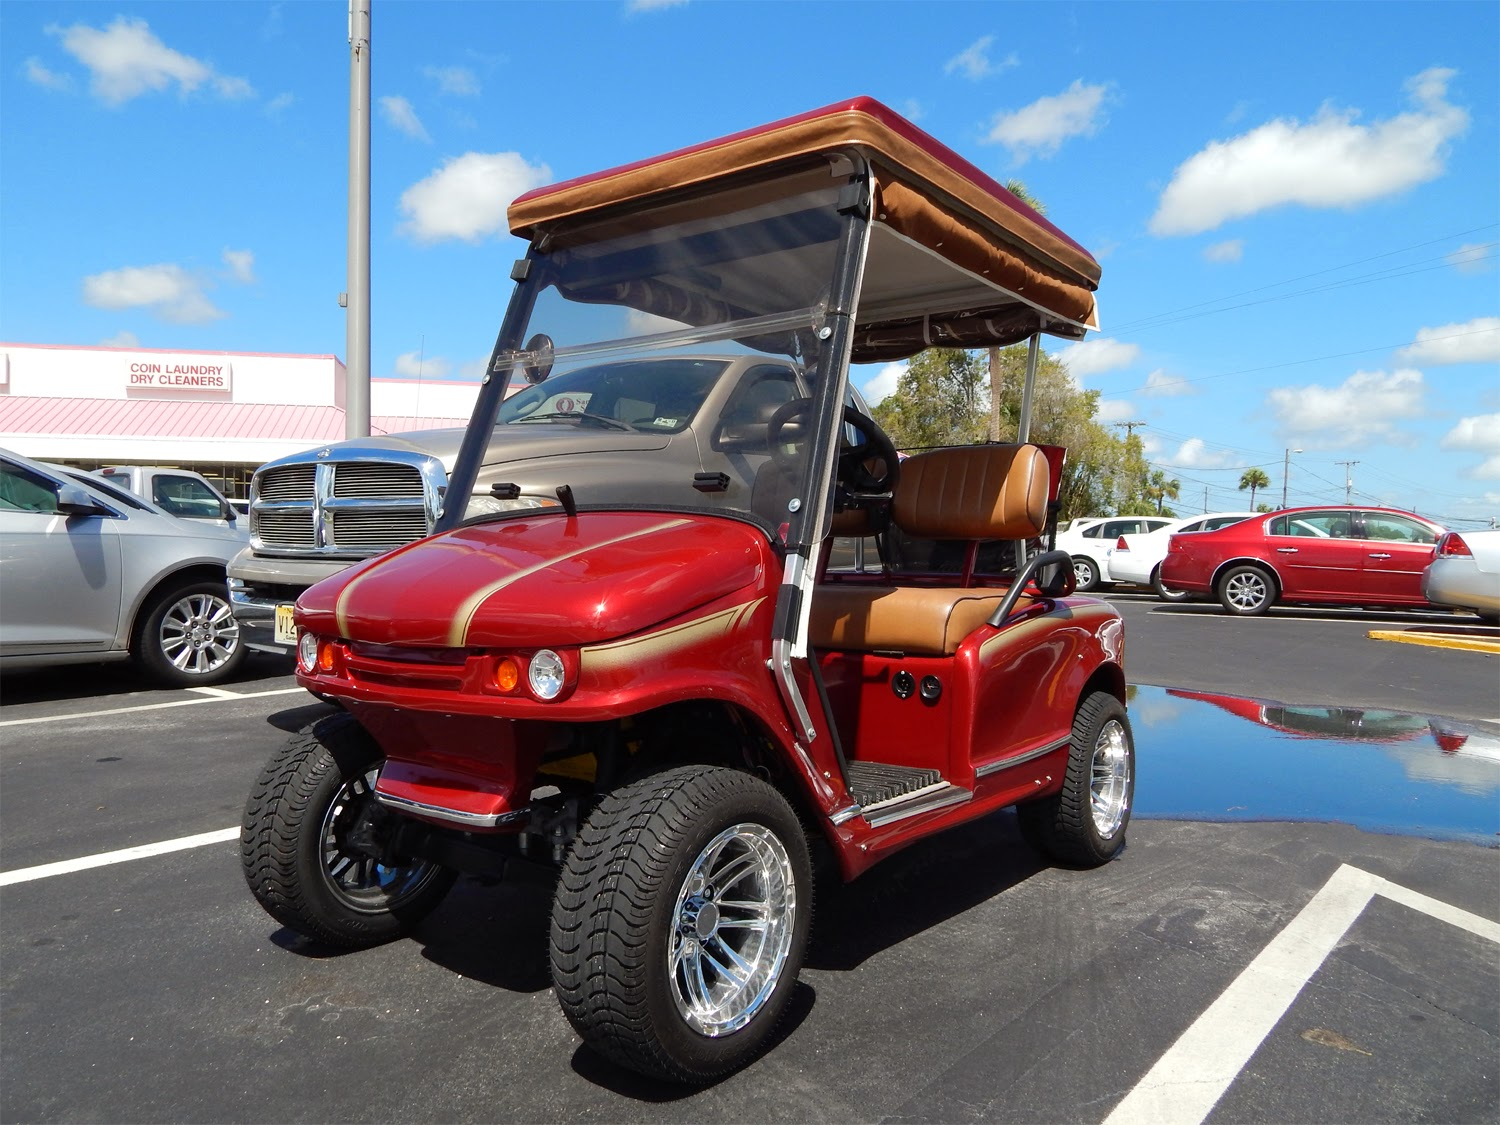 gem e2 golf cart